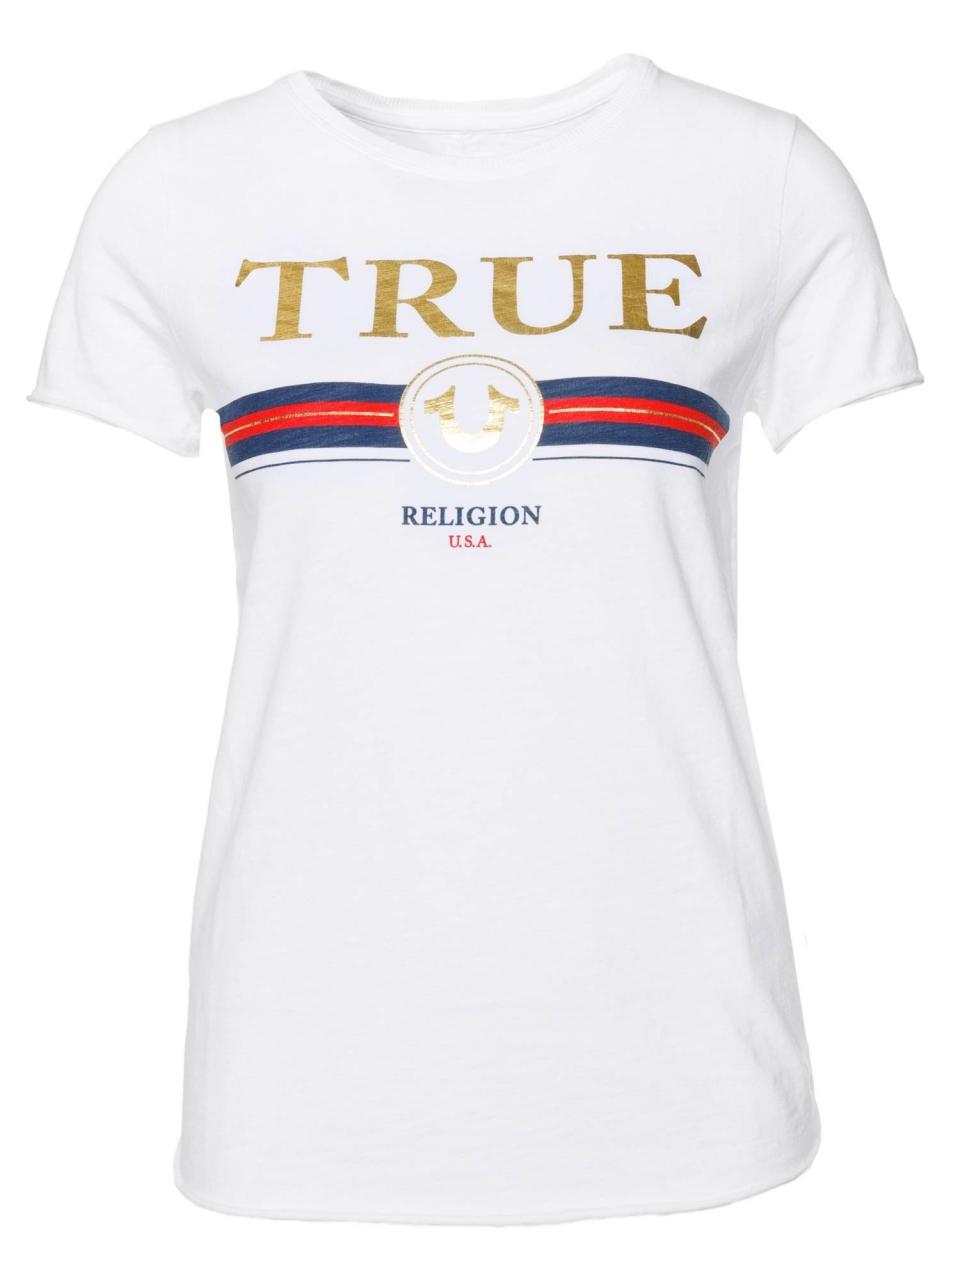 True Religion T-Shirt Boxy Crew Shirt Artwork